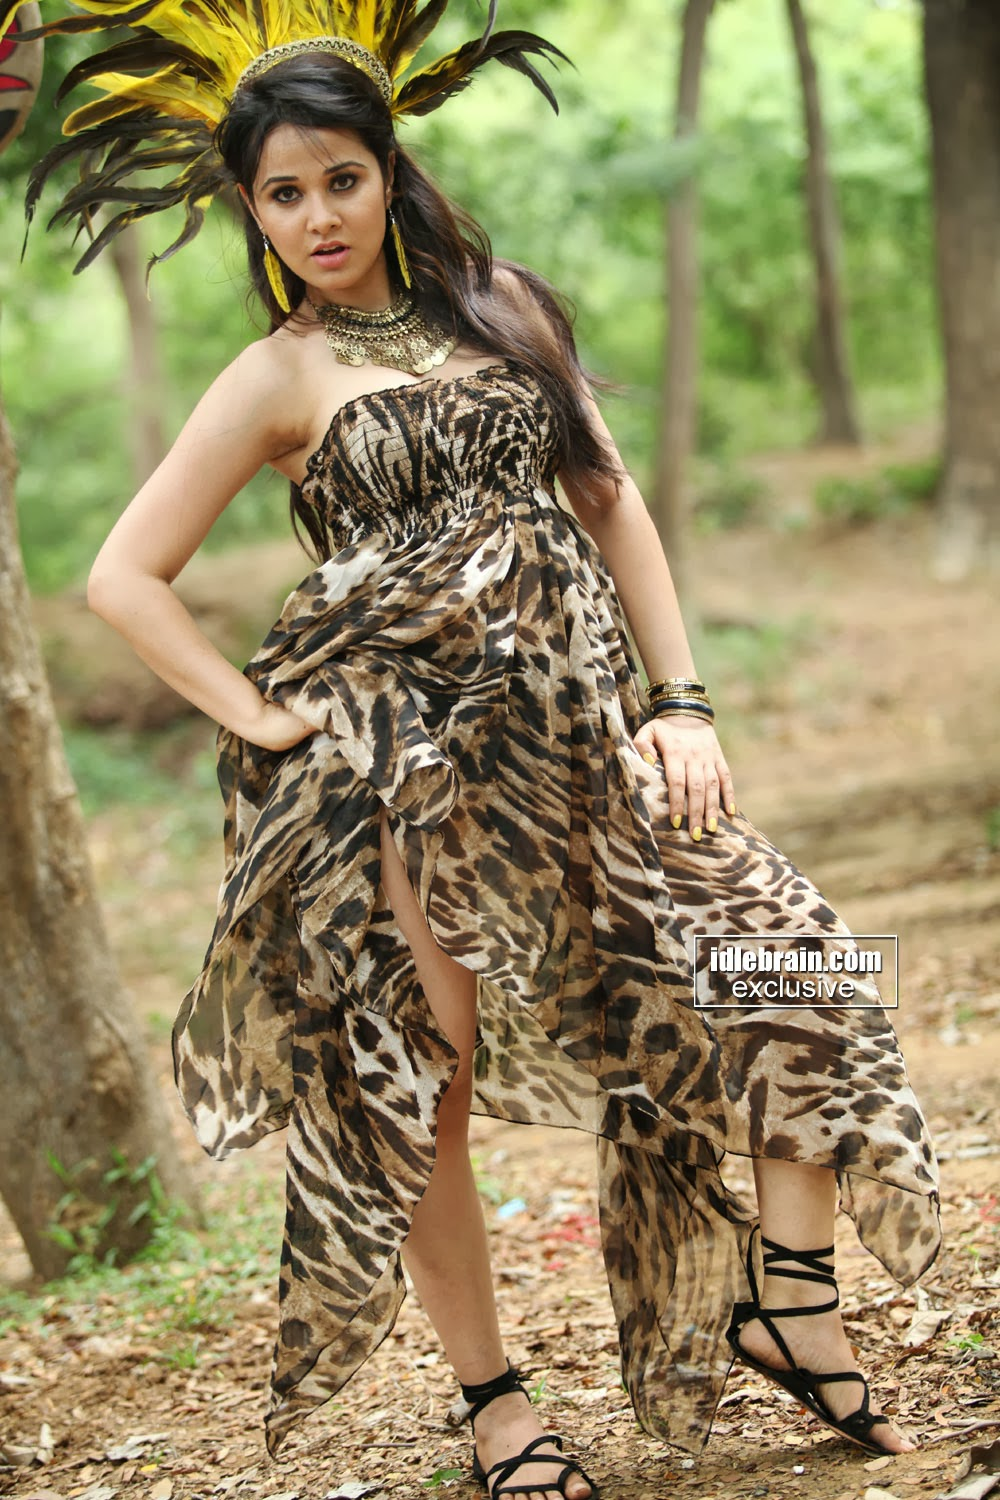 Ramya Krishna Photos - Telugu Actress photos, images, gallery, stills Pictures for lenten season